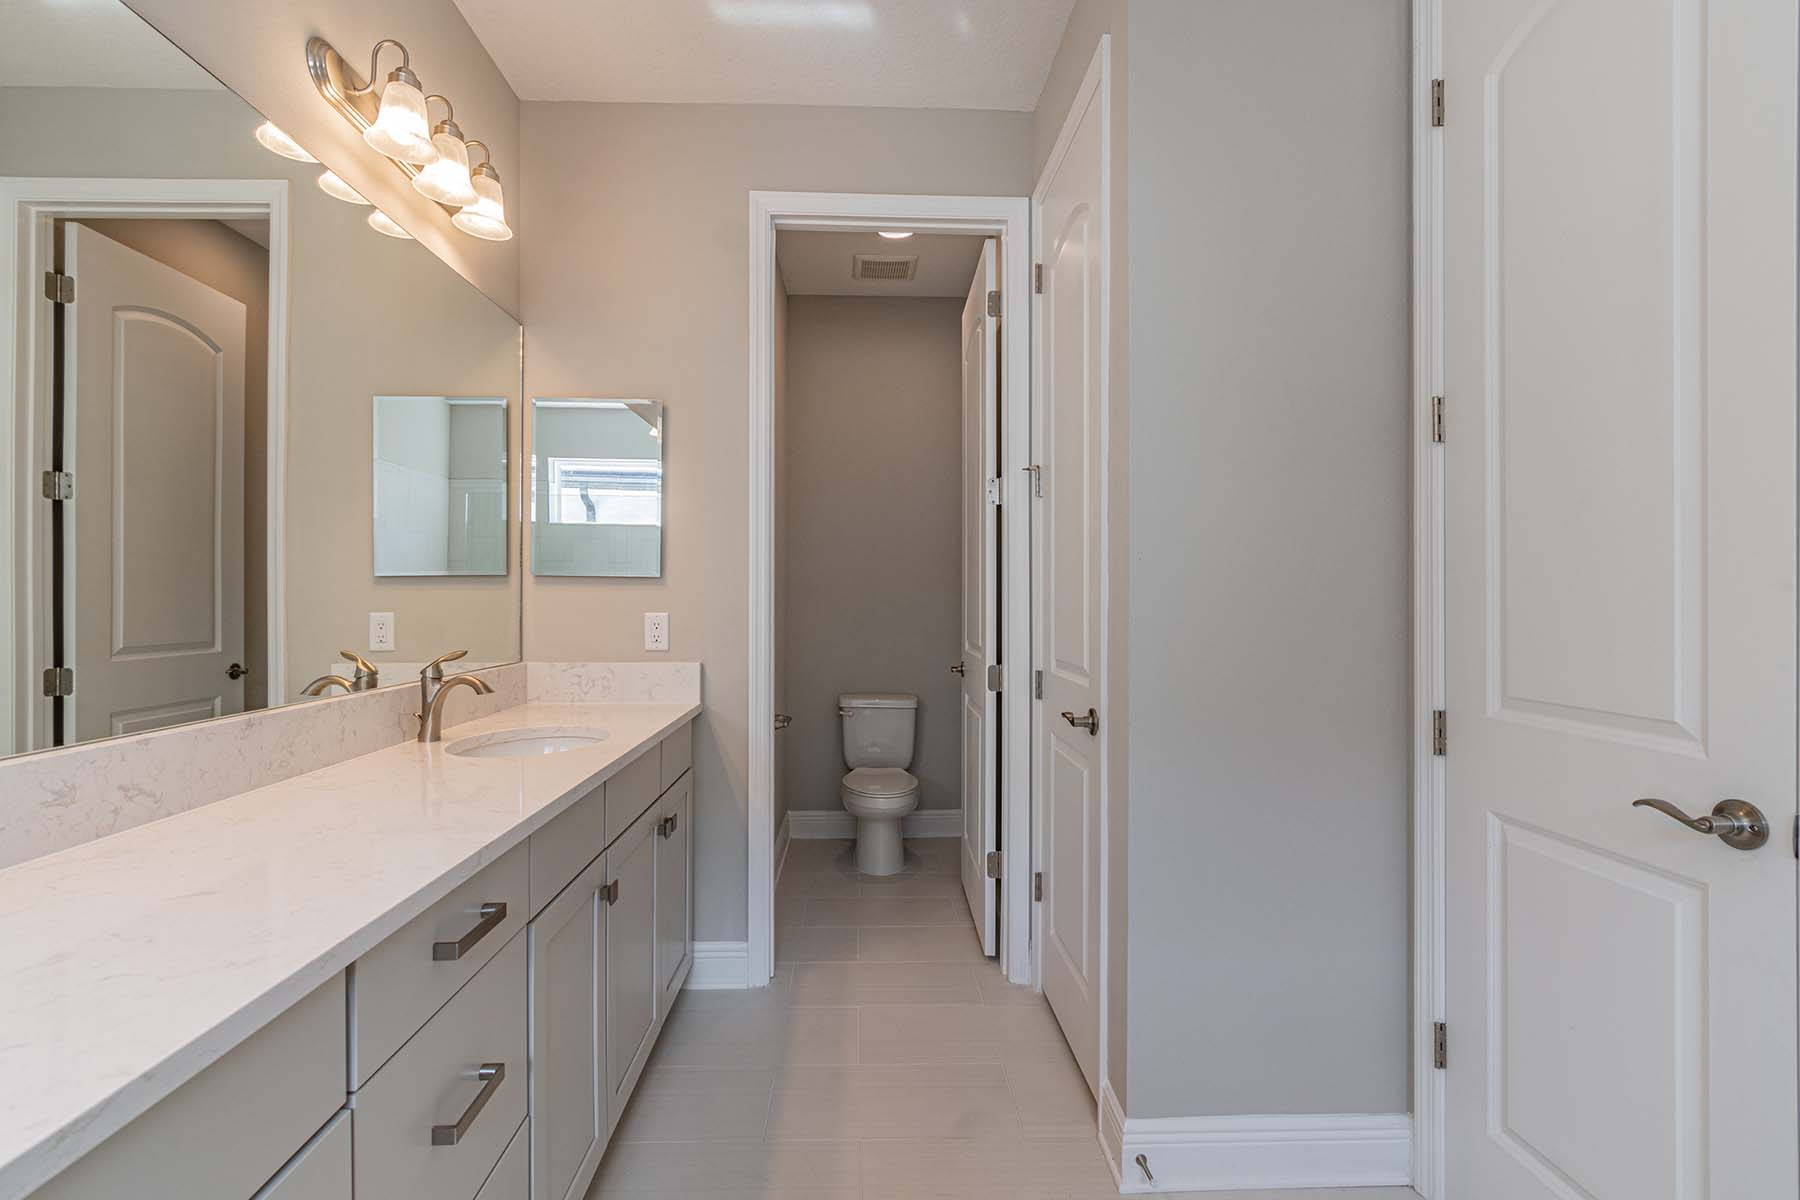 Owner's Bathroom